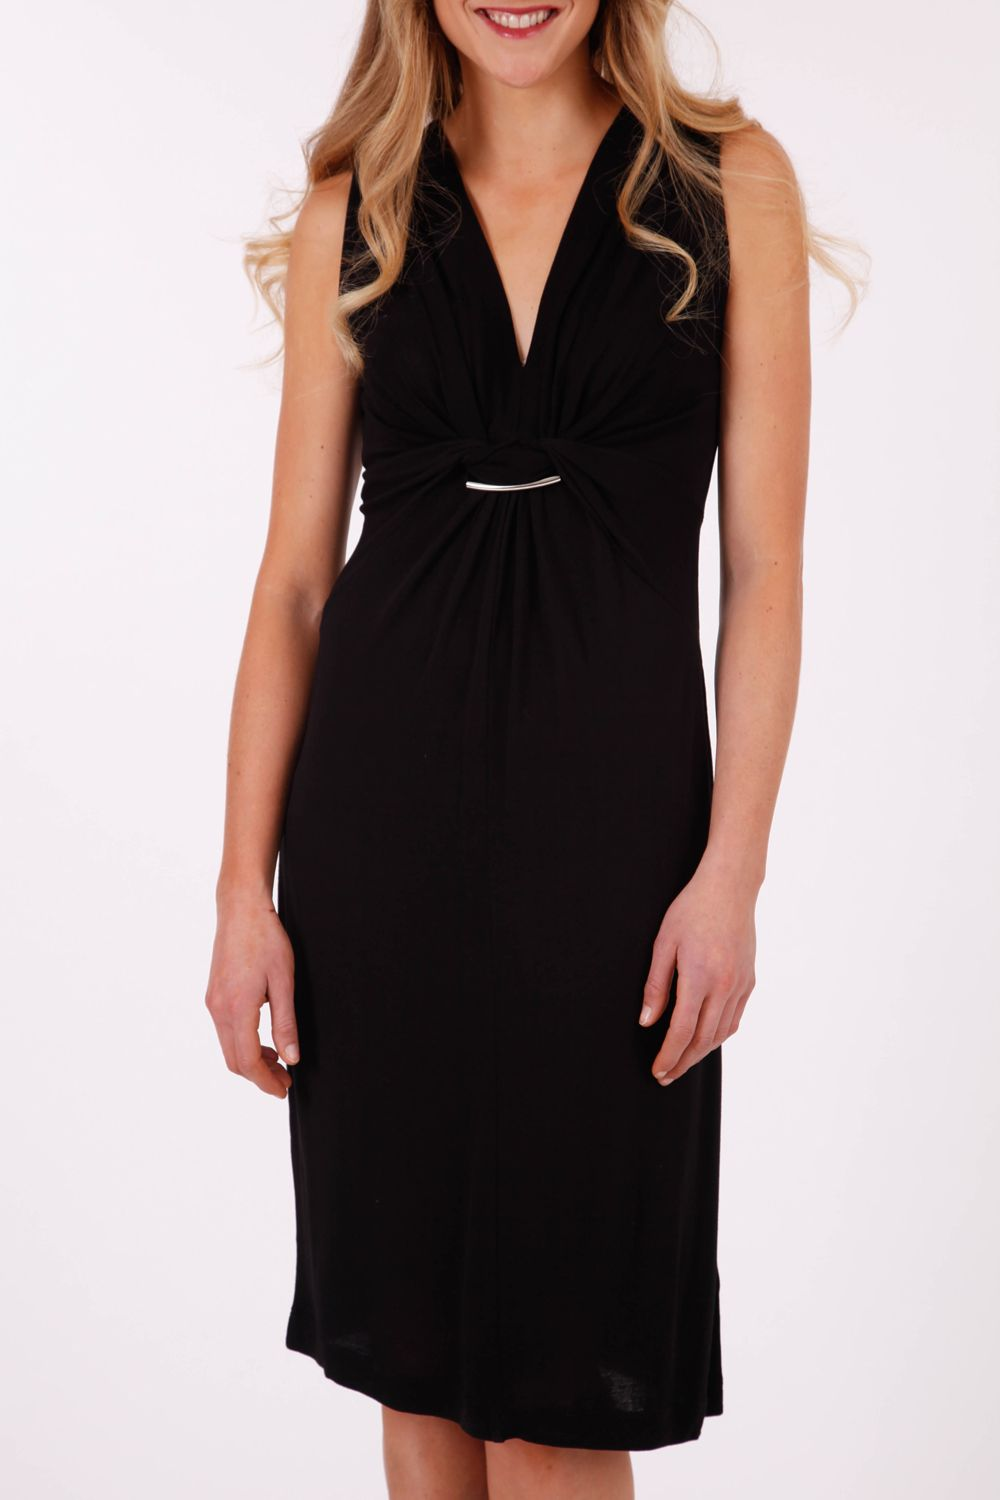 Ping pong sleeveless v neck dress simple elegance and clothing